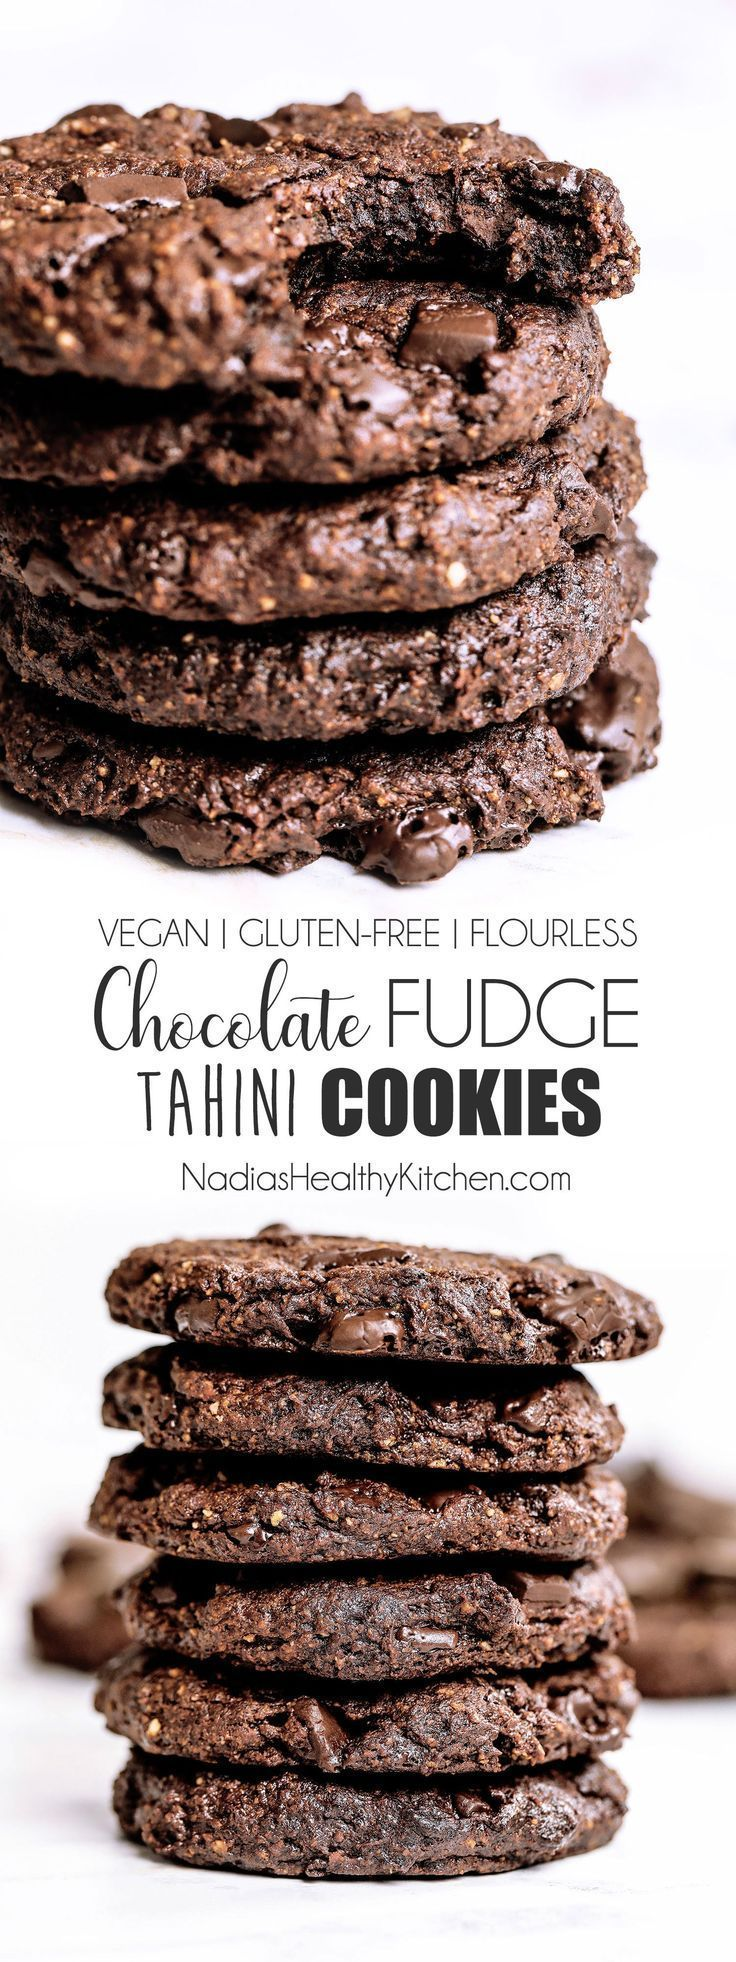 Chocolate Fudge Tahini Cookies